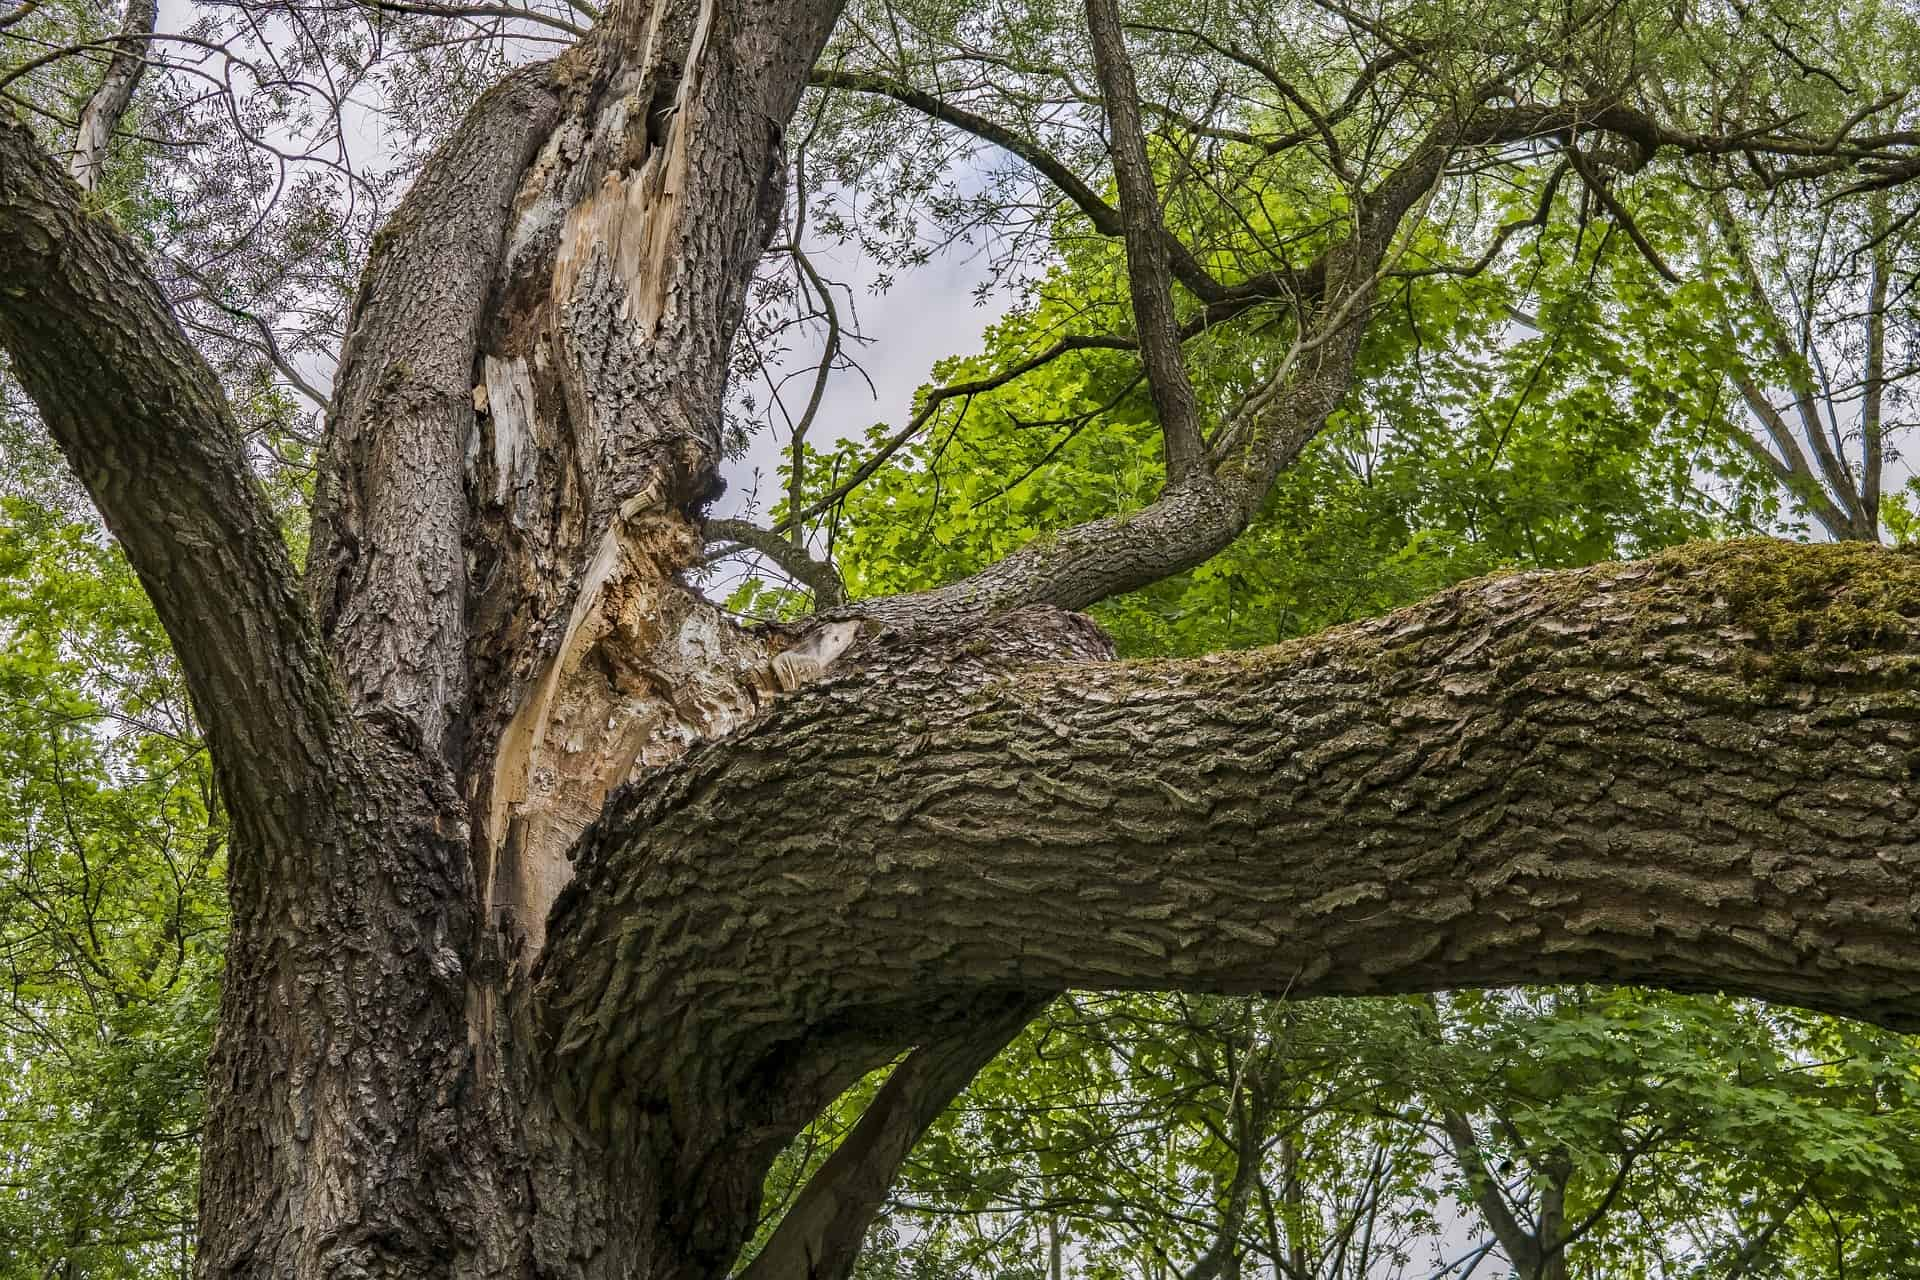 large Tree with ripped off branch caused by strong winds